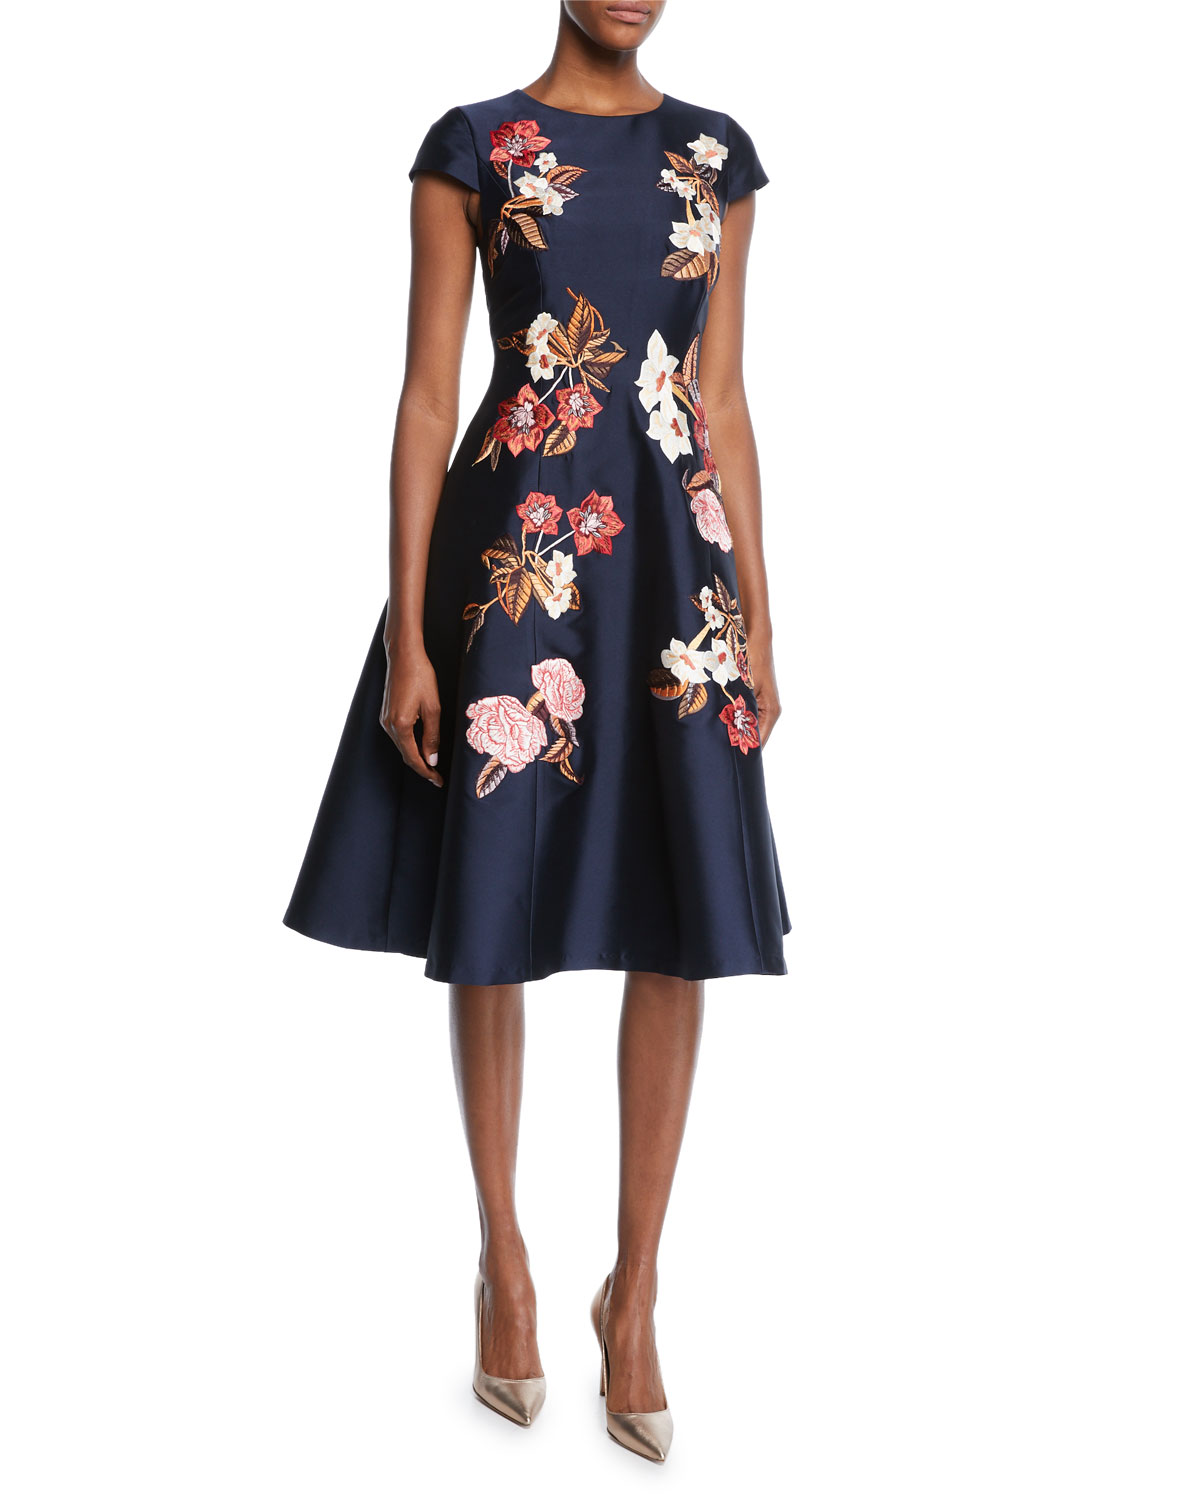 Leigh Cap Sleeve Floral Embroidered Dress by Ahluwalia